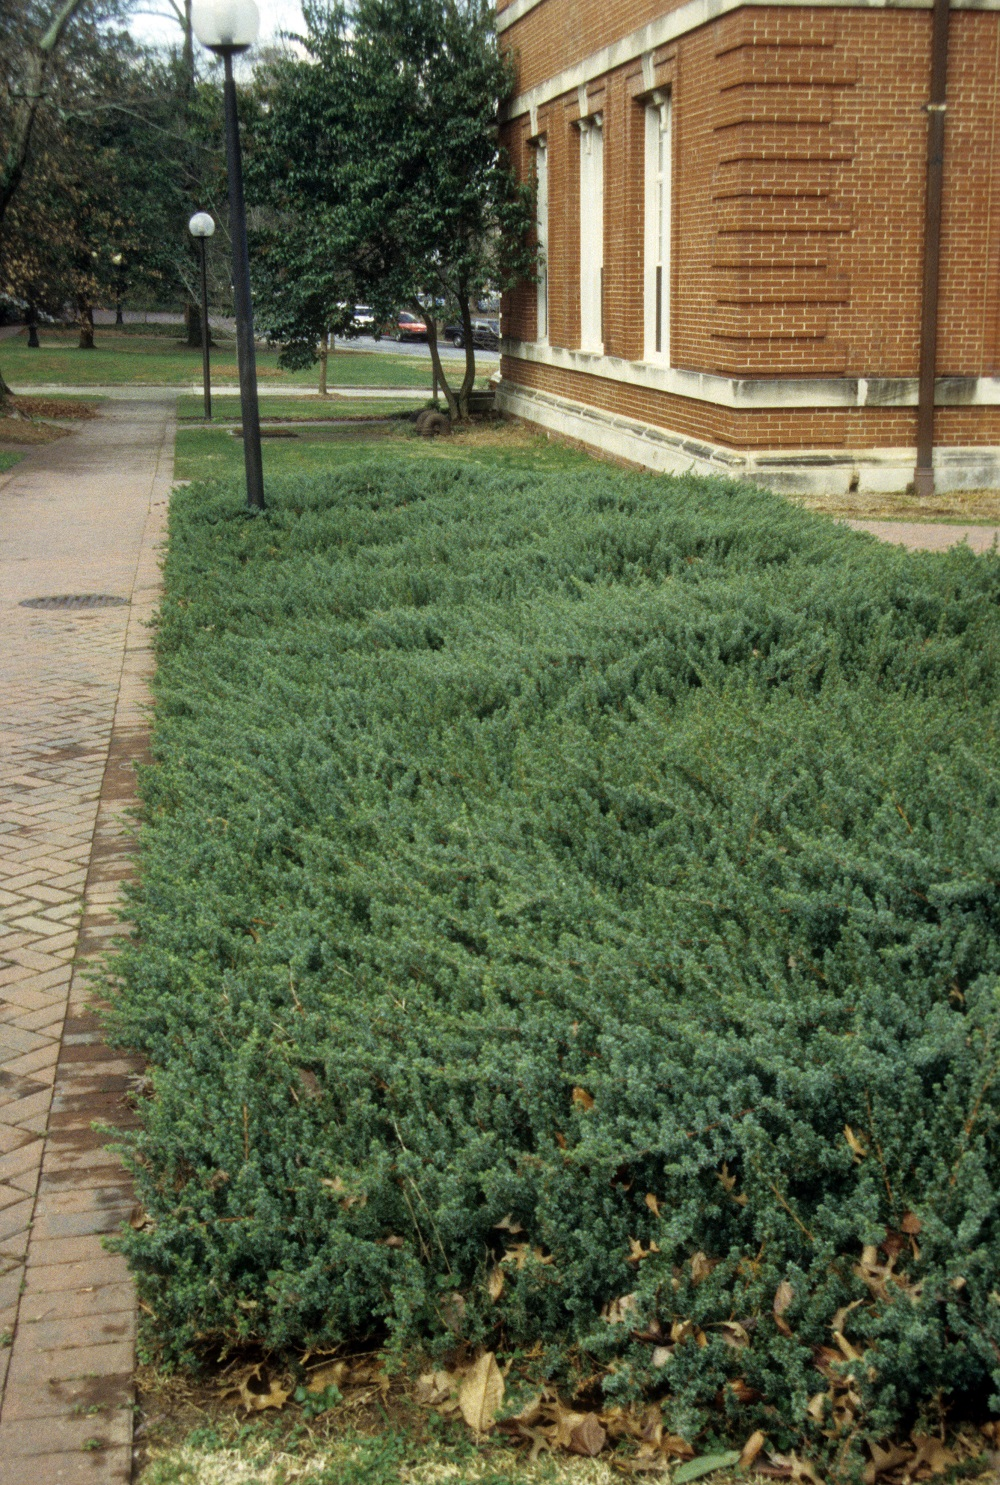 Groundcover for drivway strip